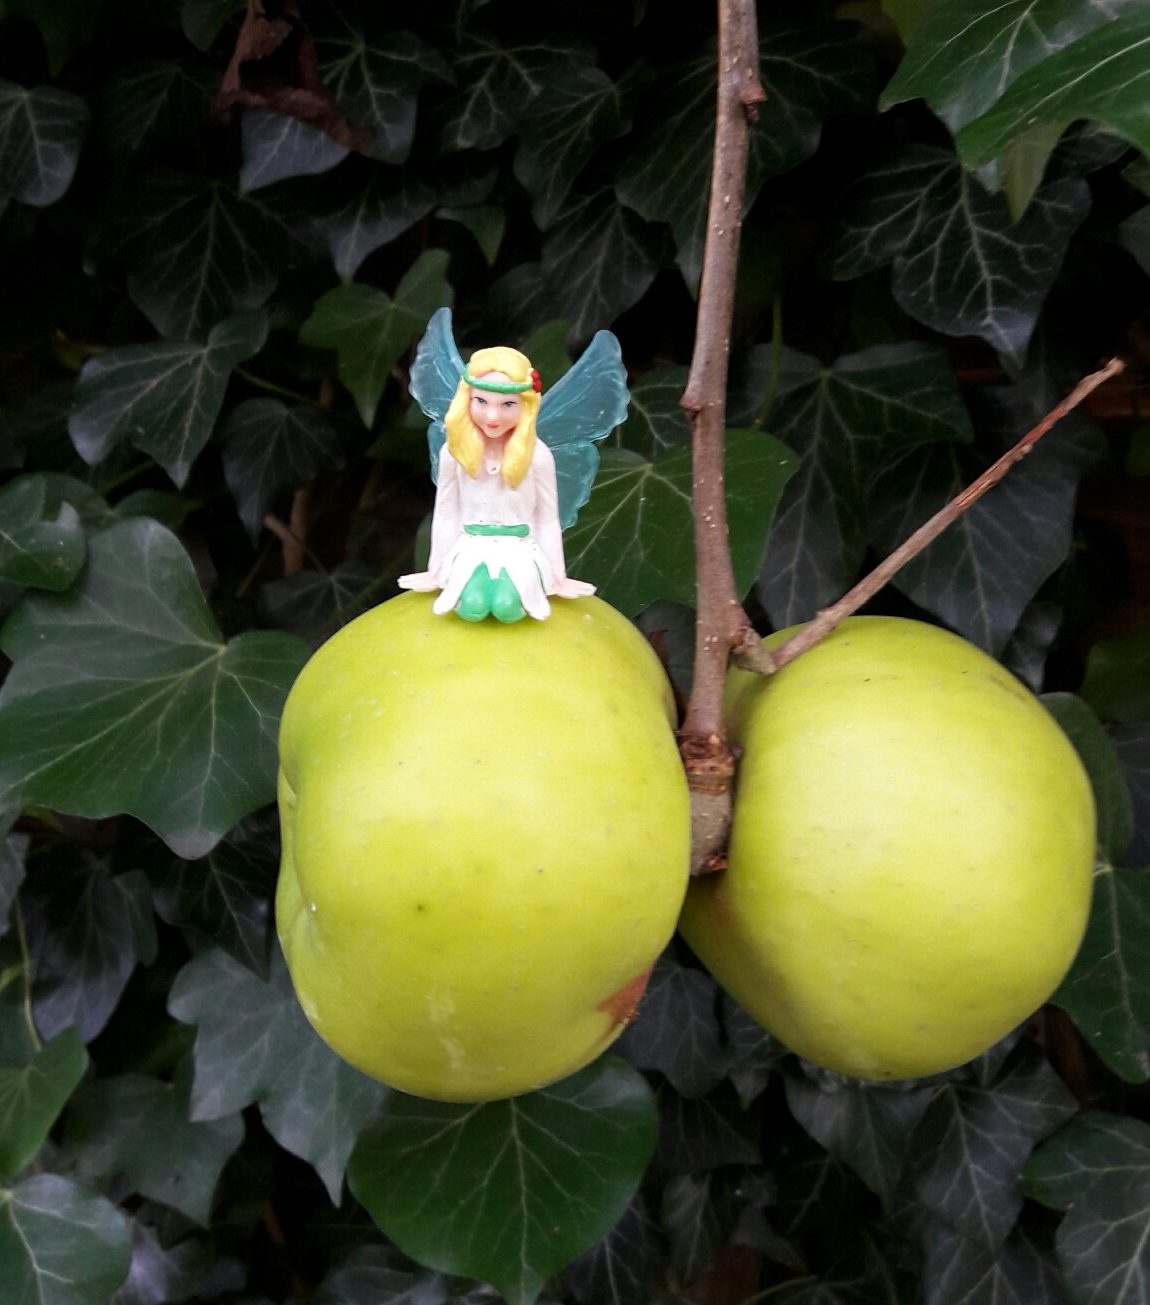 How did Belle harvest apples?